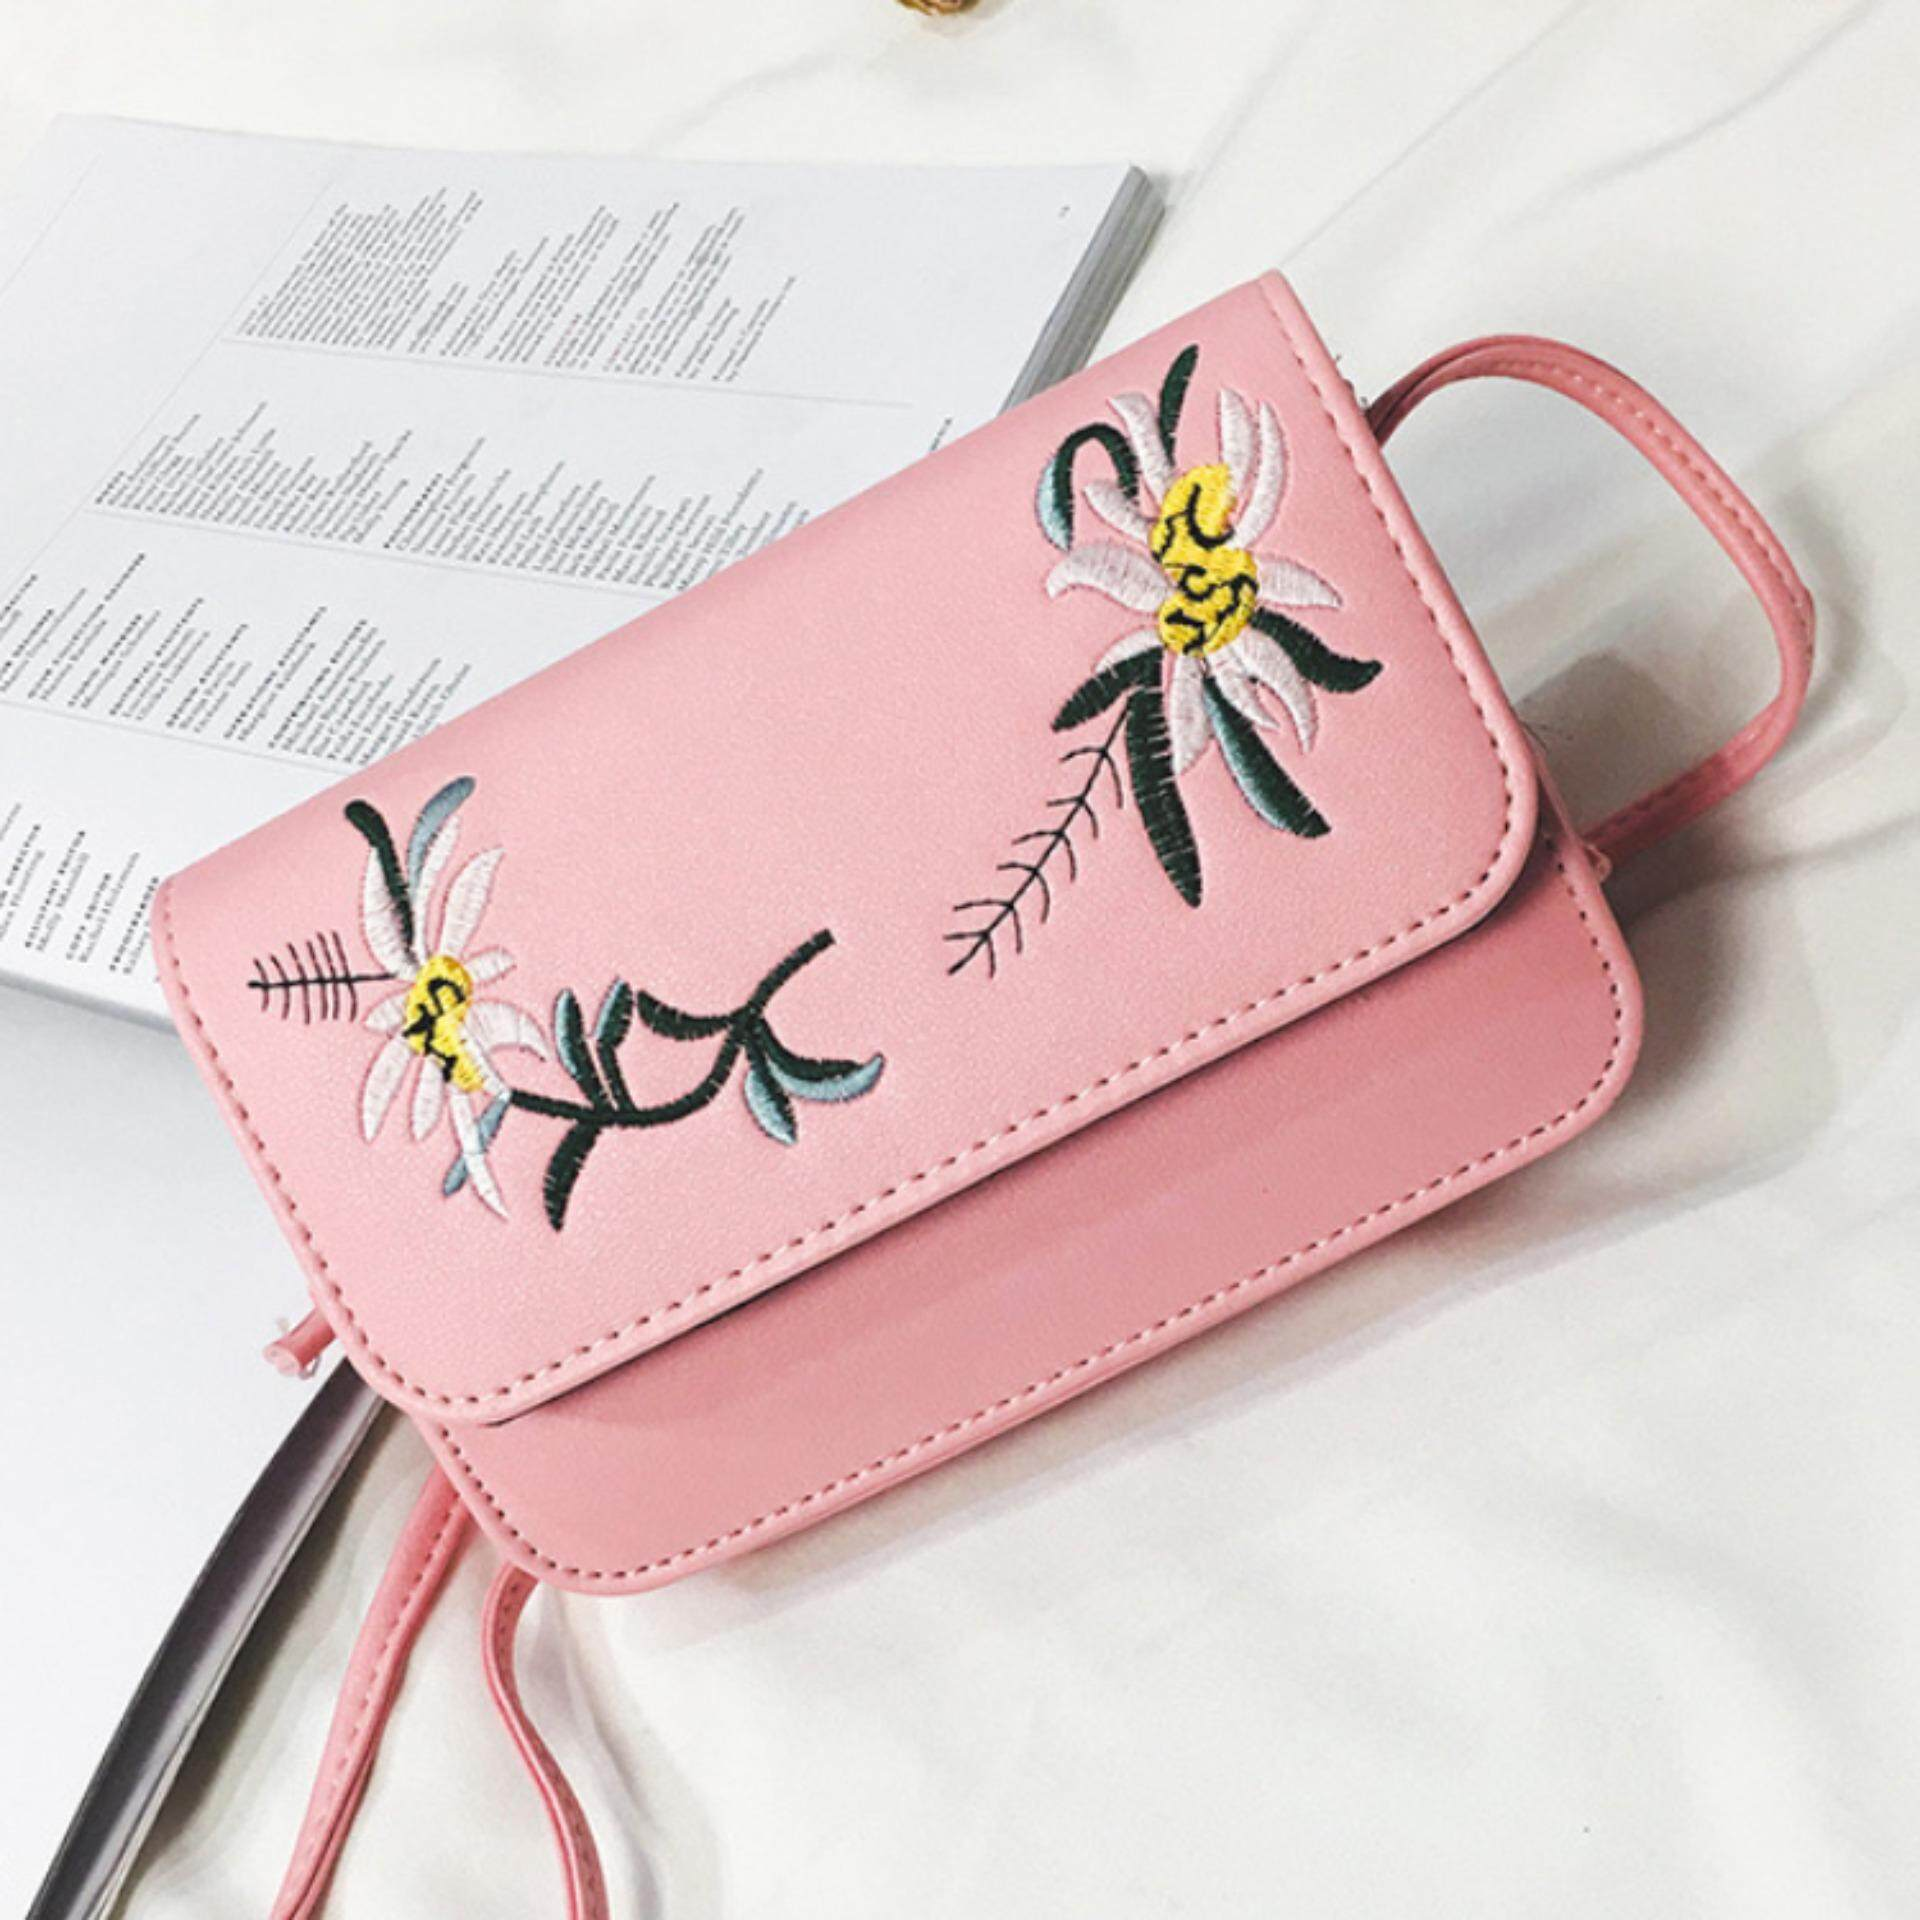 Vicria Tas Branded Wanita With Pompom High Quality Pu Leather Korean Elegant Bag Style Pink Beige Source 2in1 Bear Latest